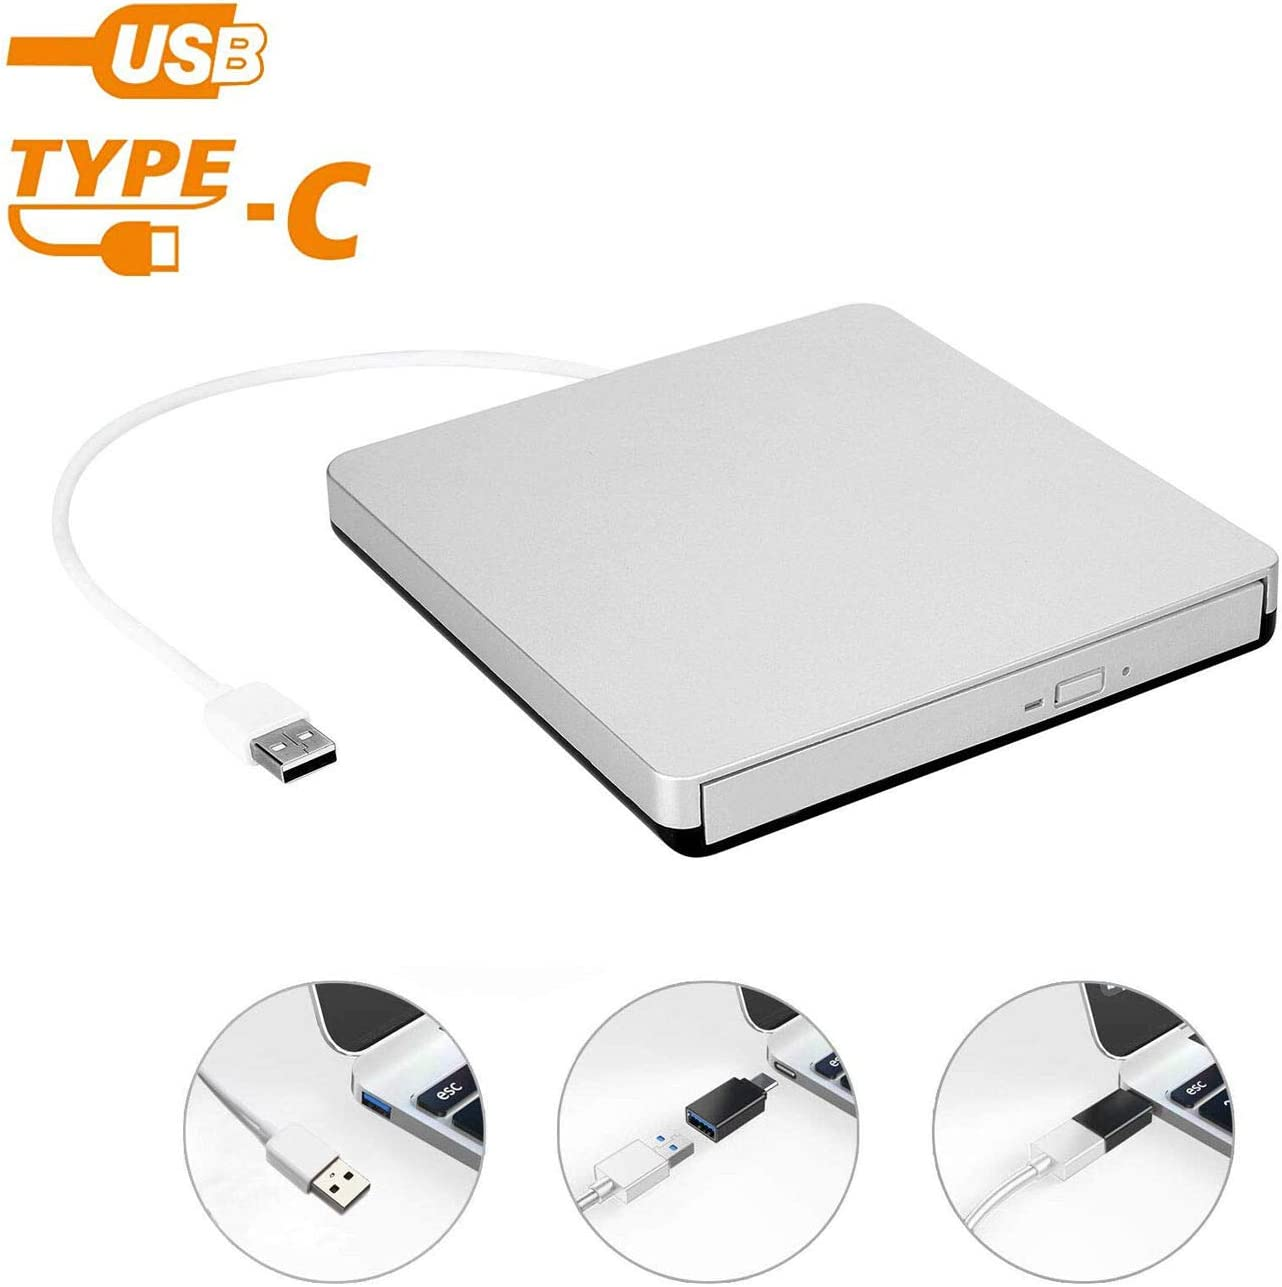 Usb external dvd writer for mac